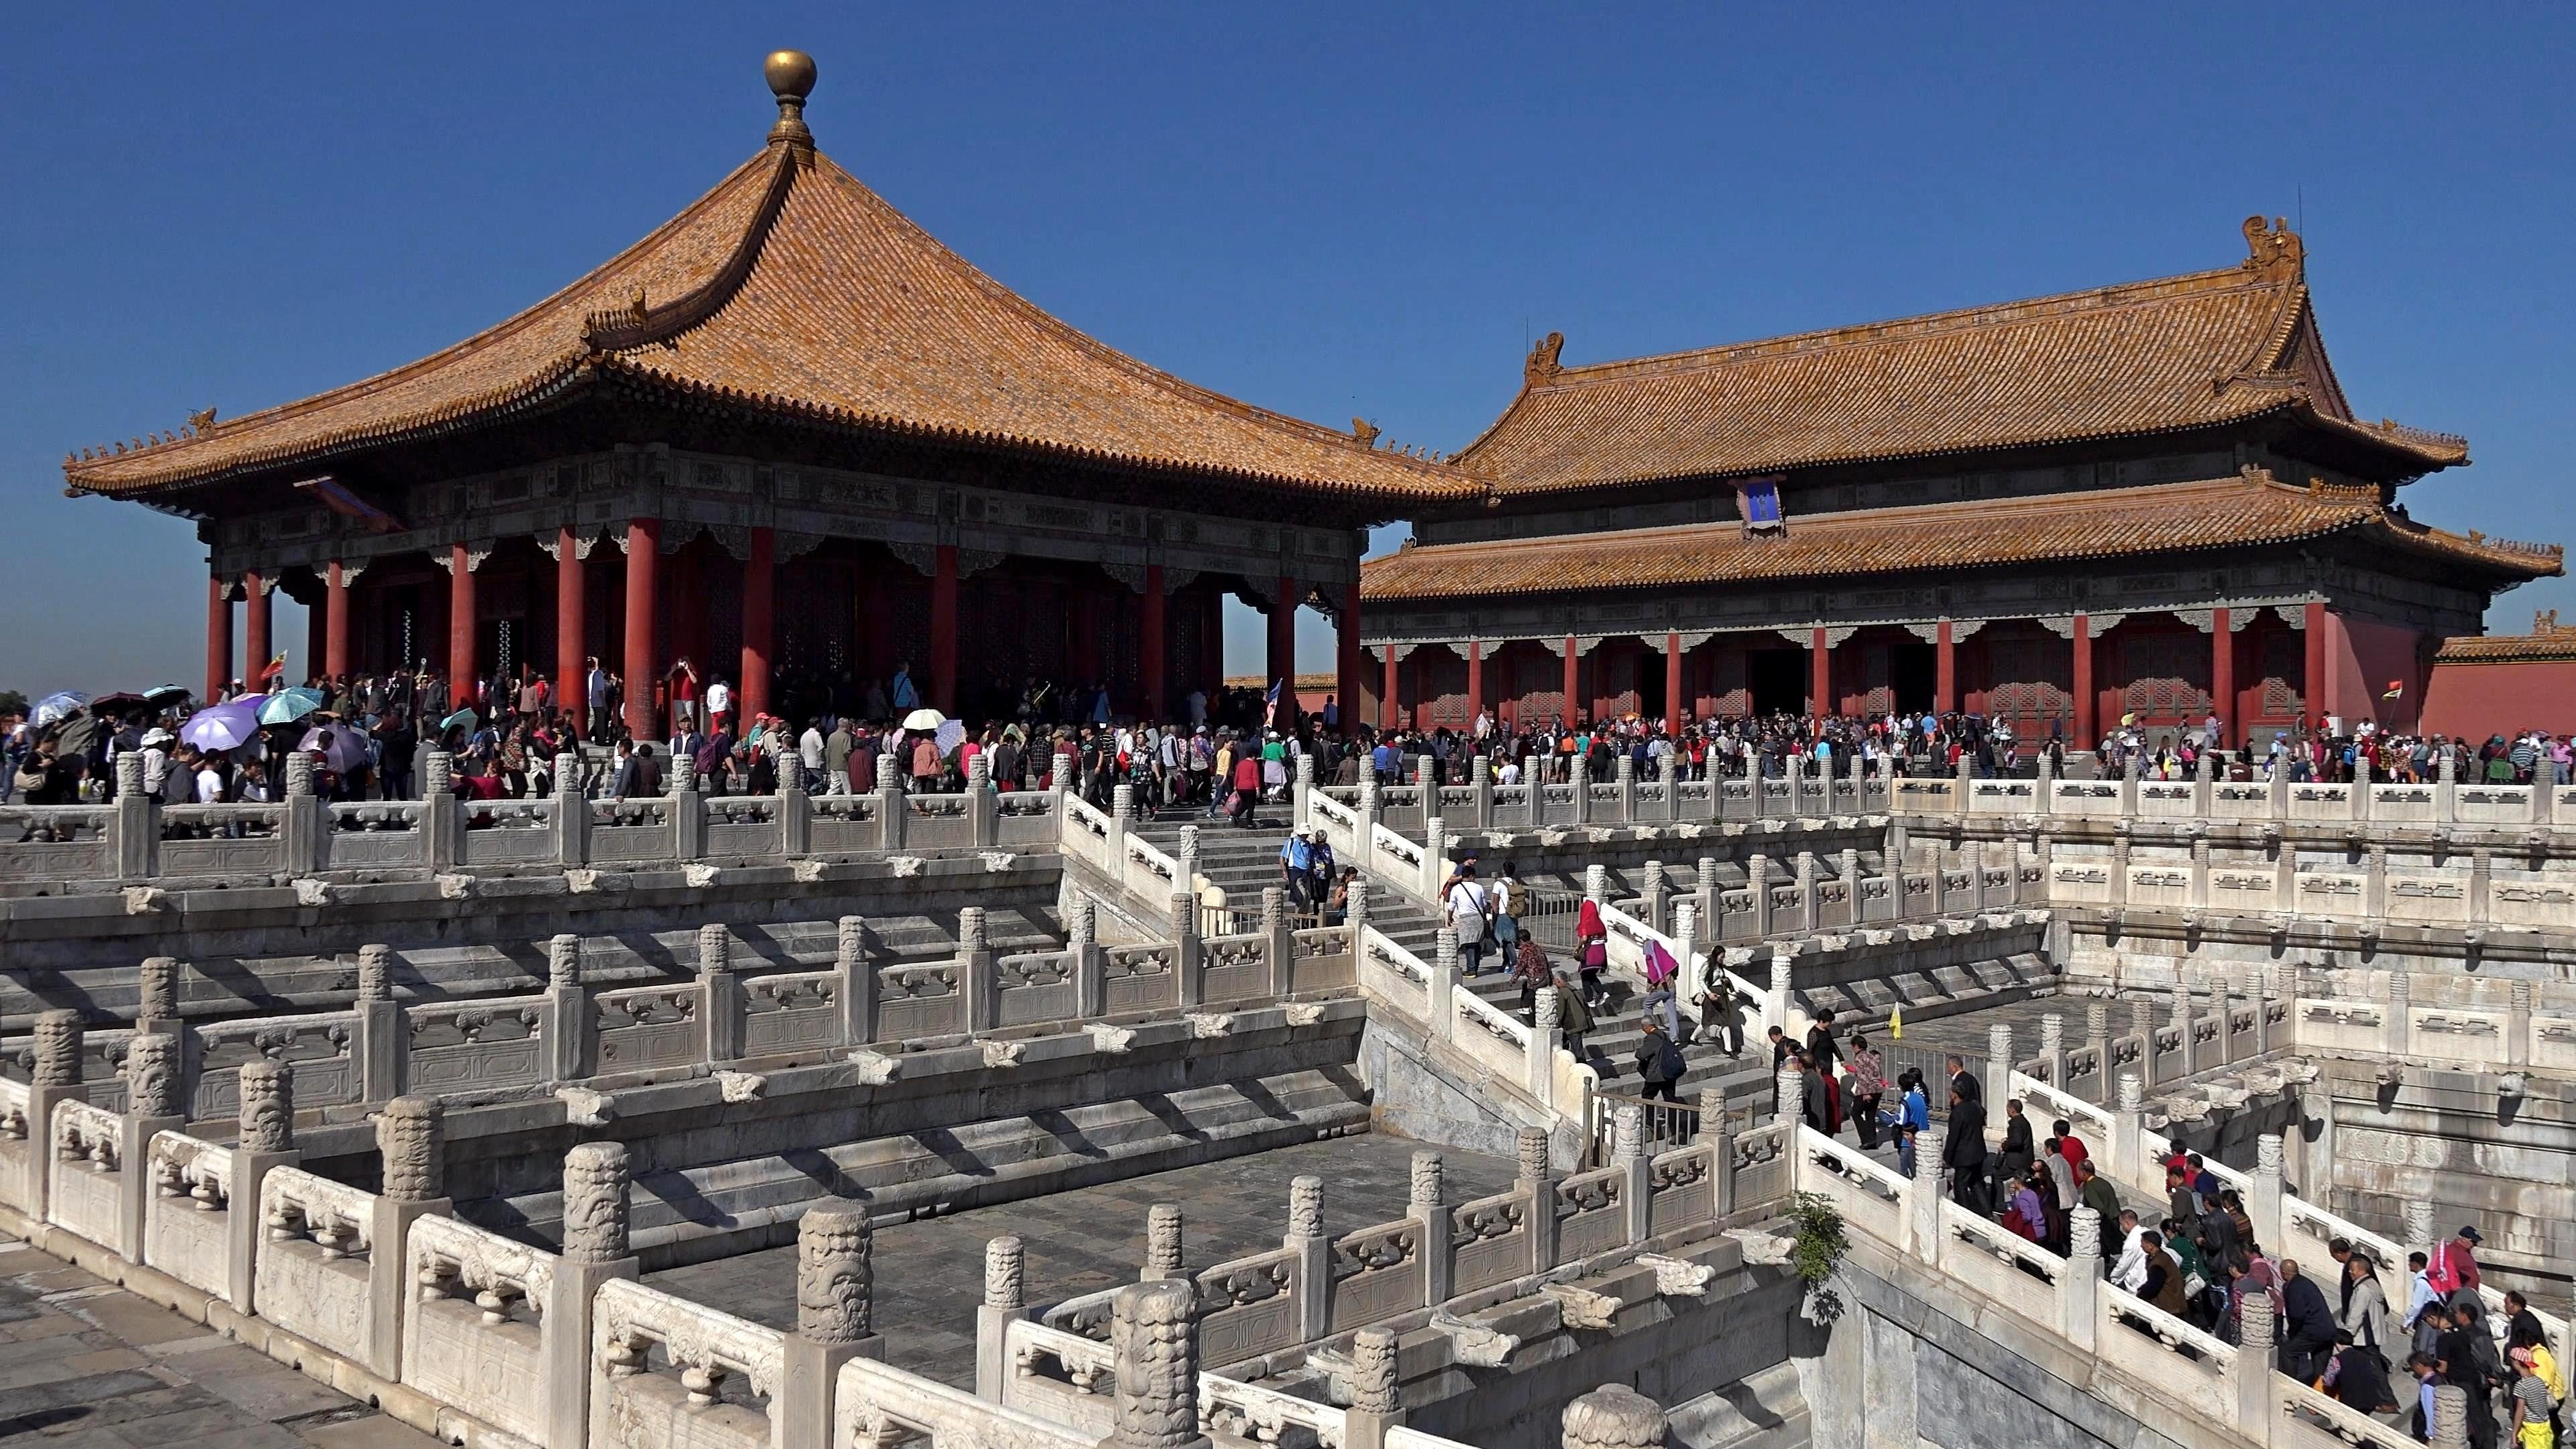 HQ Forbidden City Wallpapers | File 1186.89Kb